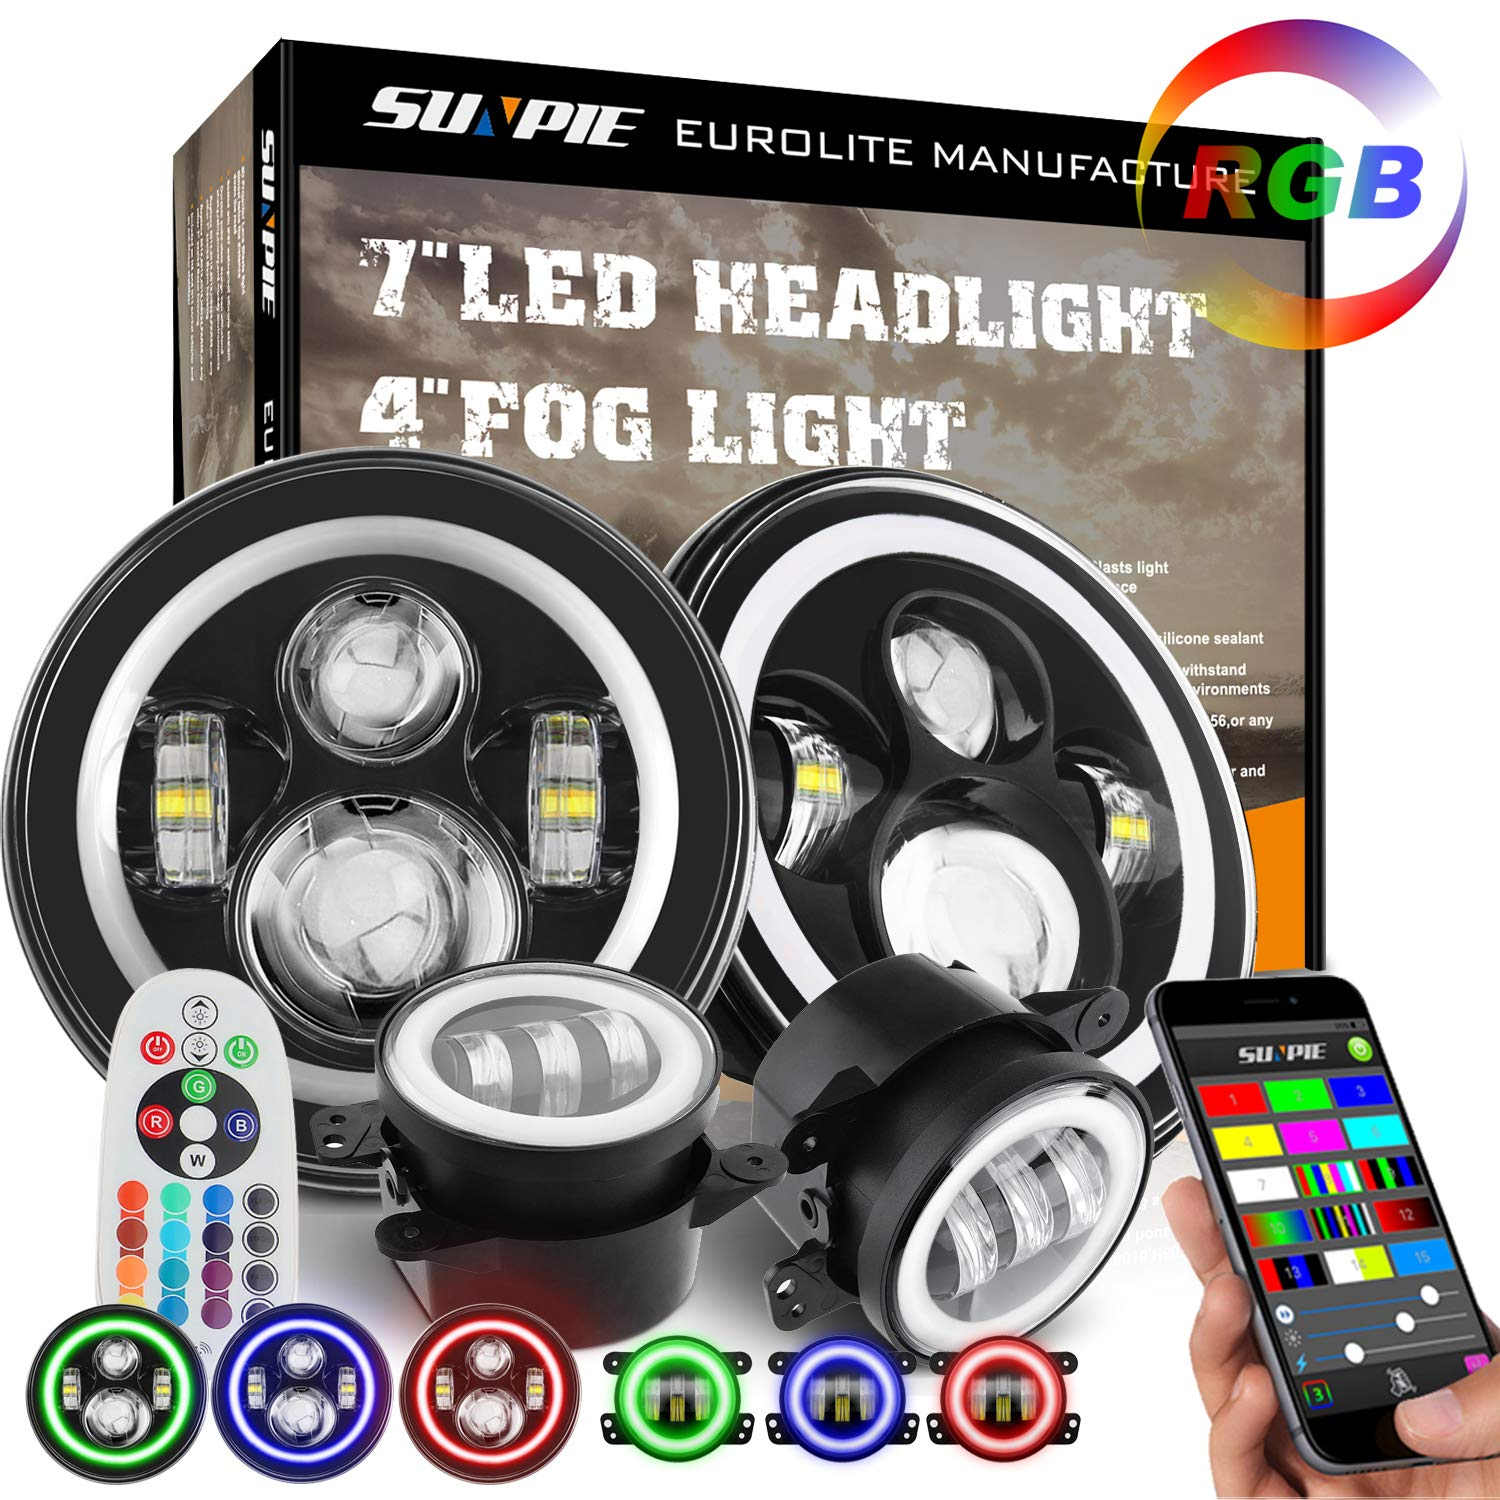 7' LED Headlights with RGB Halo + 4' LED Fog Lights for Jeep Wrangler 1997-2017 JK TJ LJ Front Bumper Lamp Driving Lights by Phone APP Remote Control SUNPIE